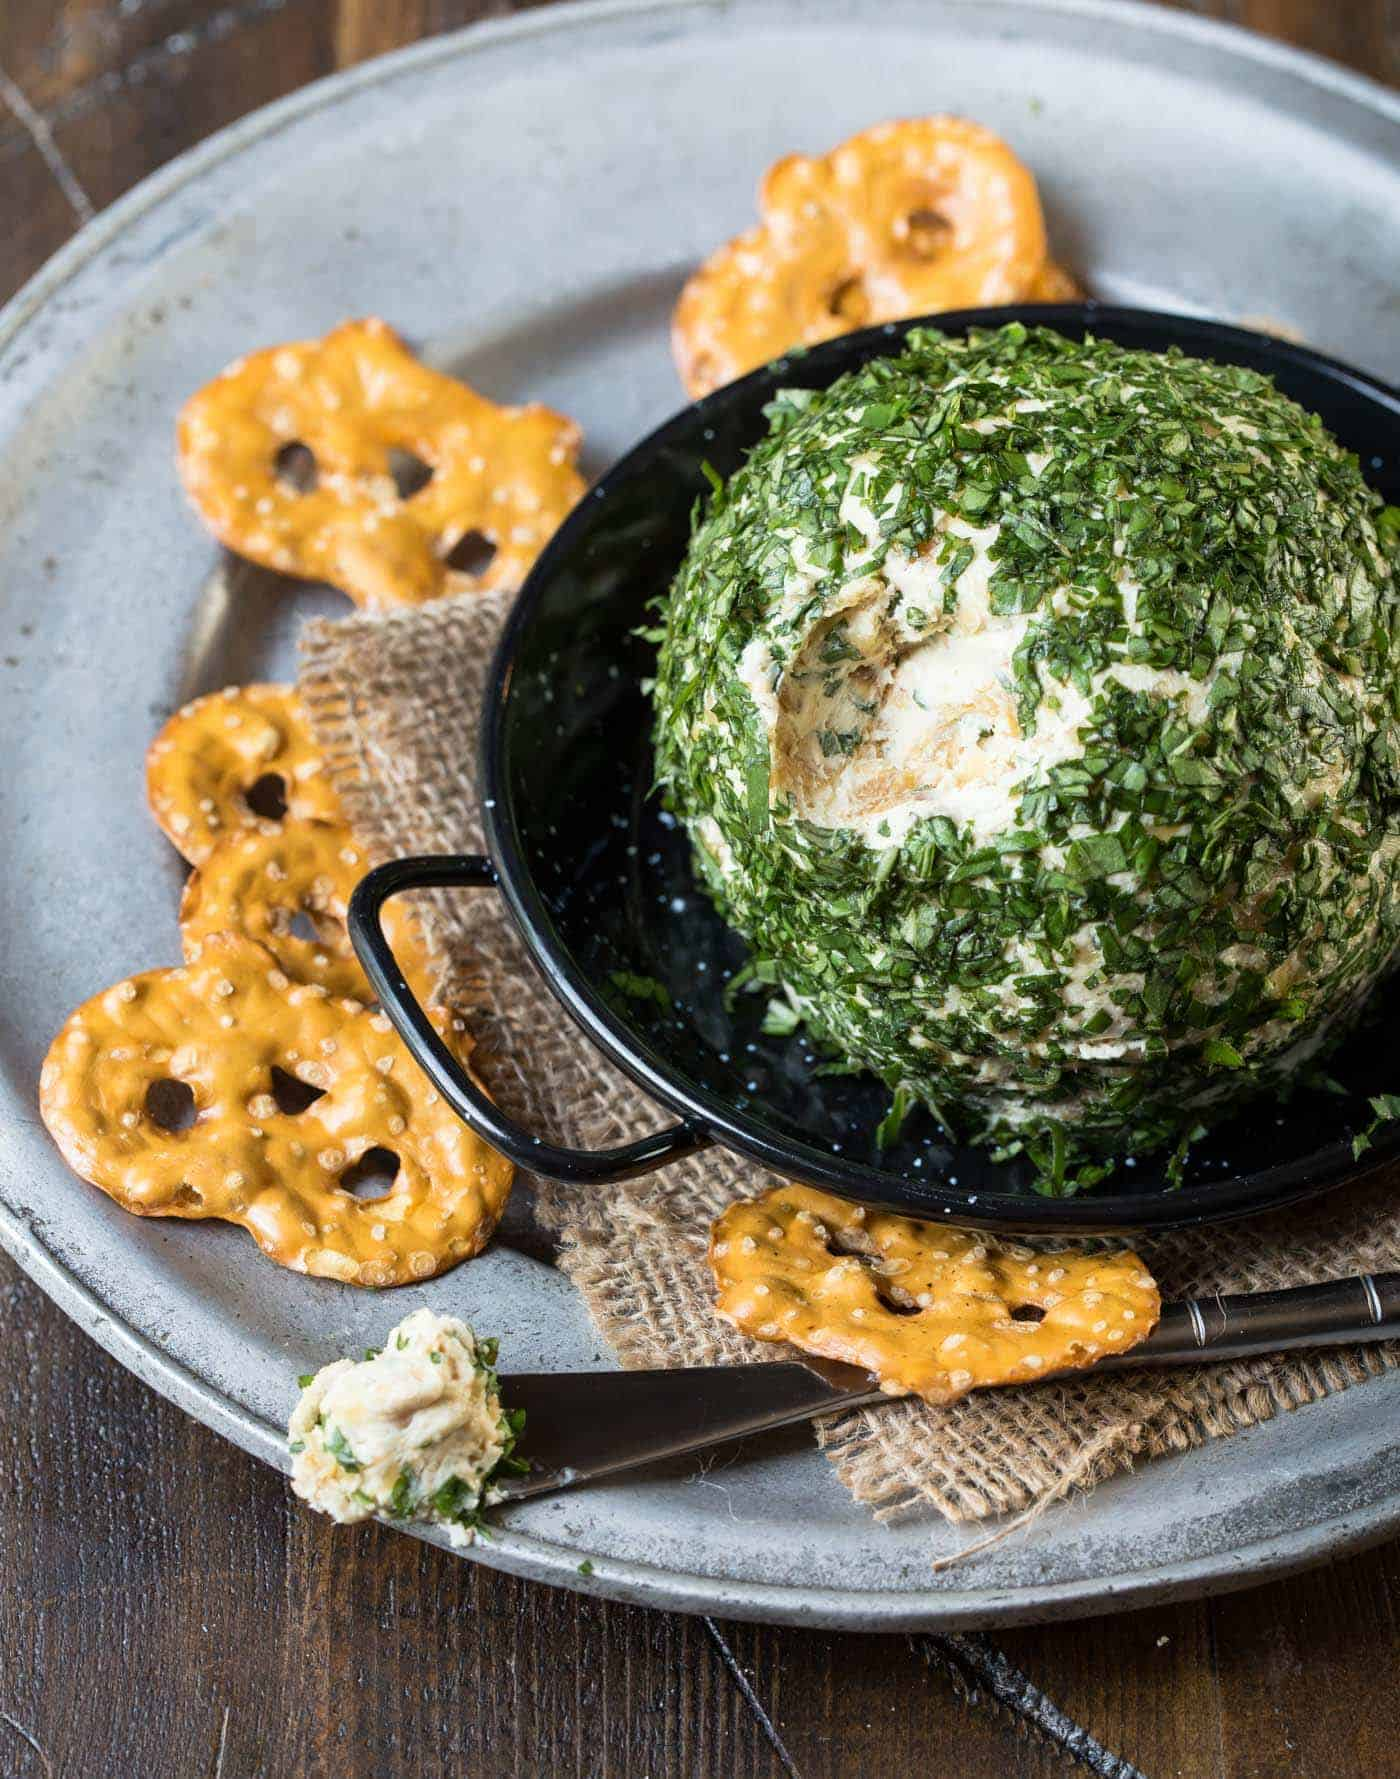 Make ahead appetizers don't get much tastier than this Goat Cheese, Basil and Vidalia Onion Cheese Ball recipe - perfect for parties!